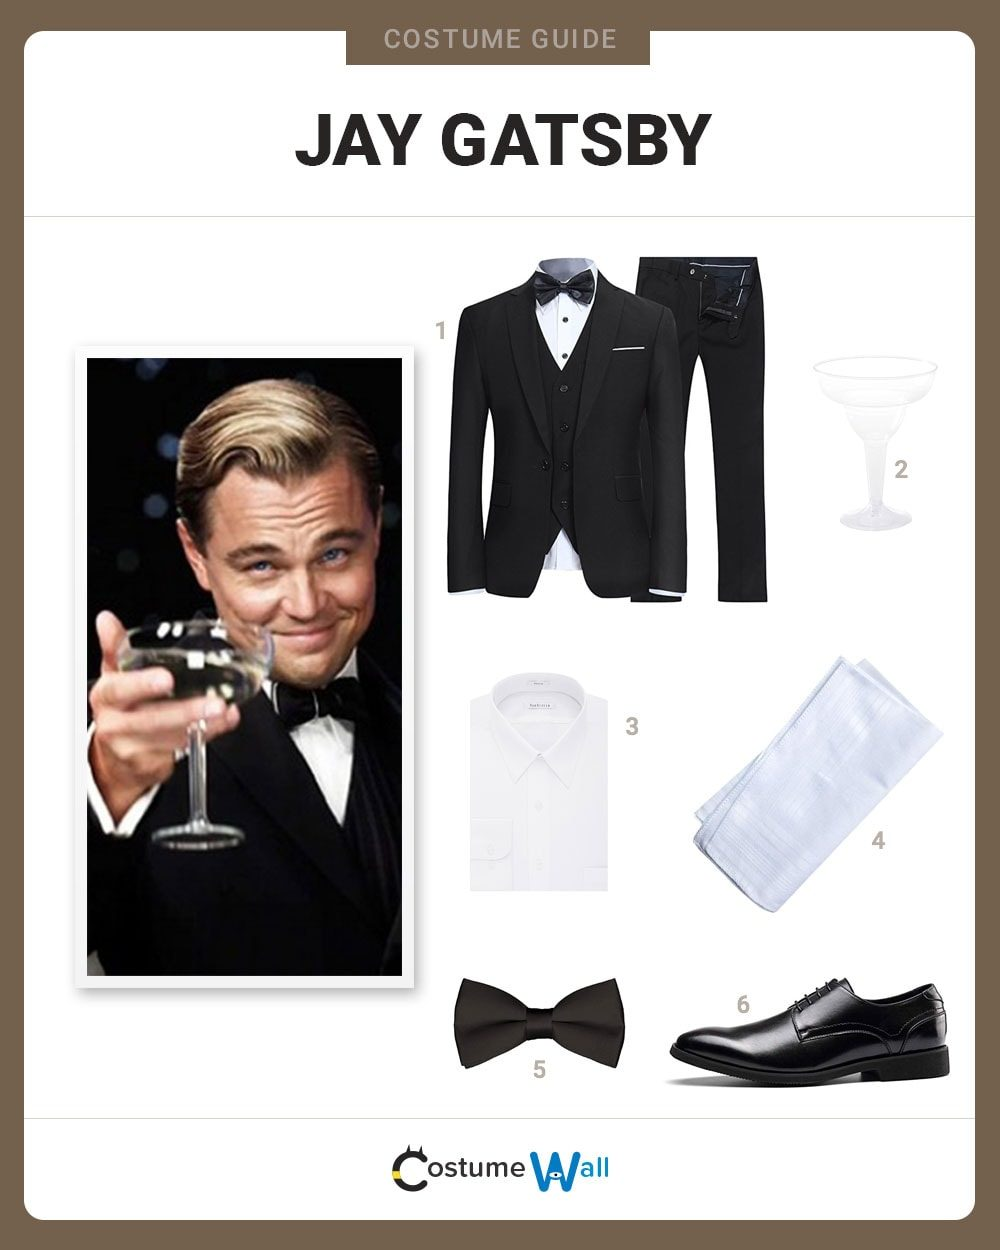 Jay Gatsby Costume Guide